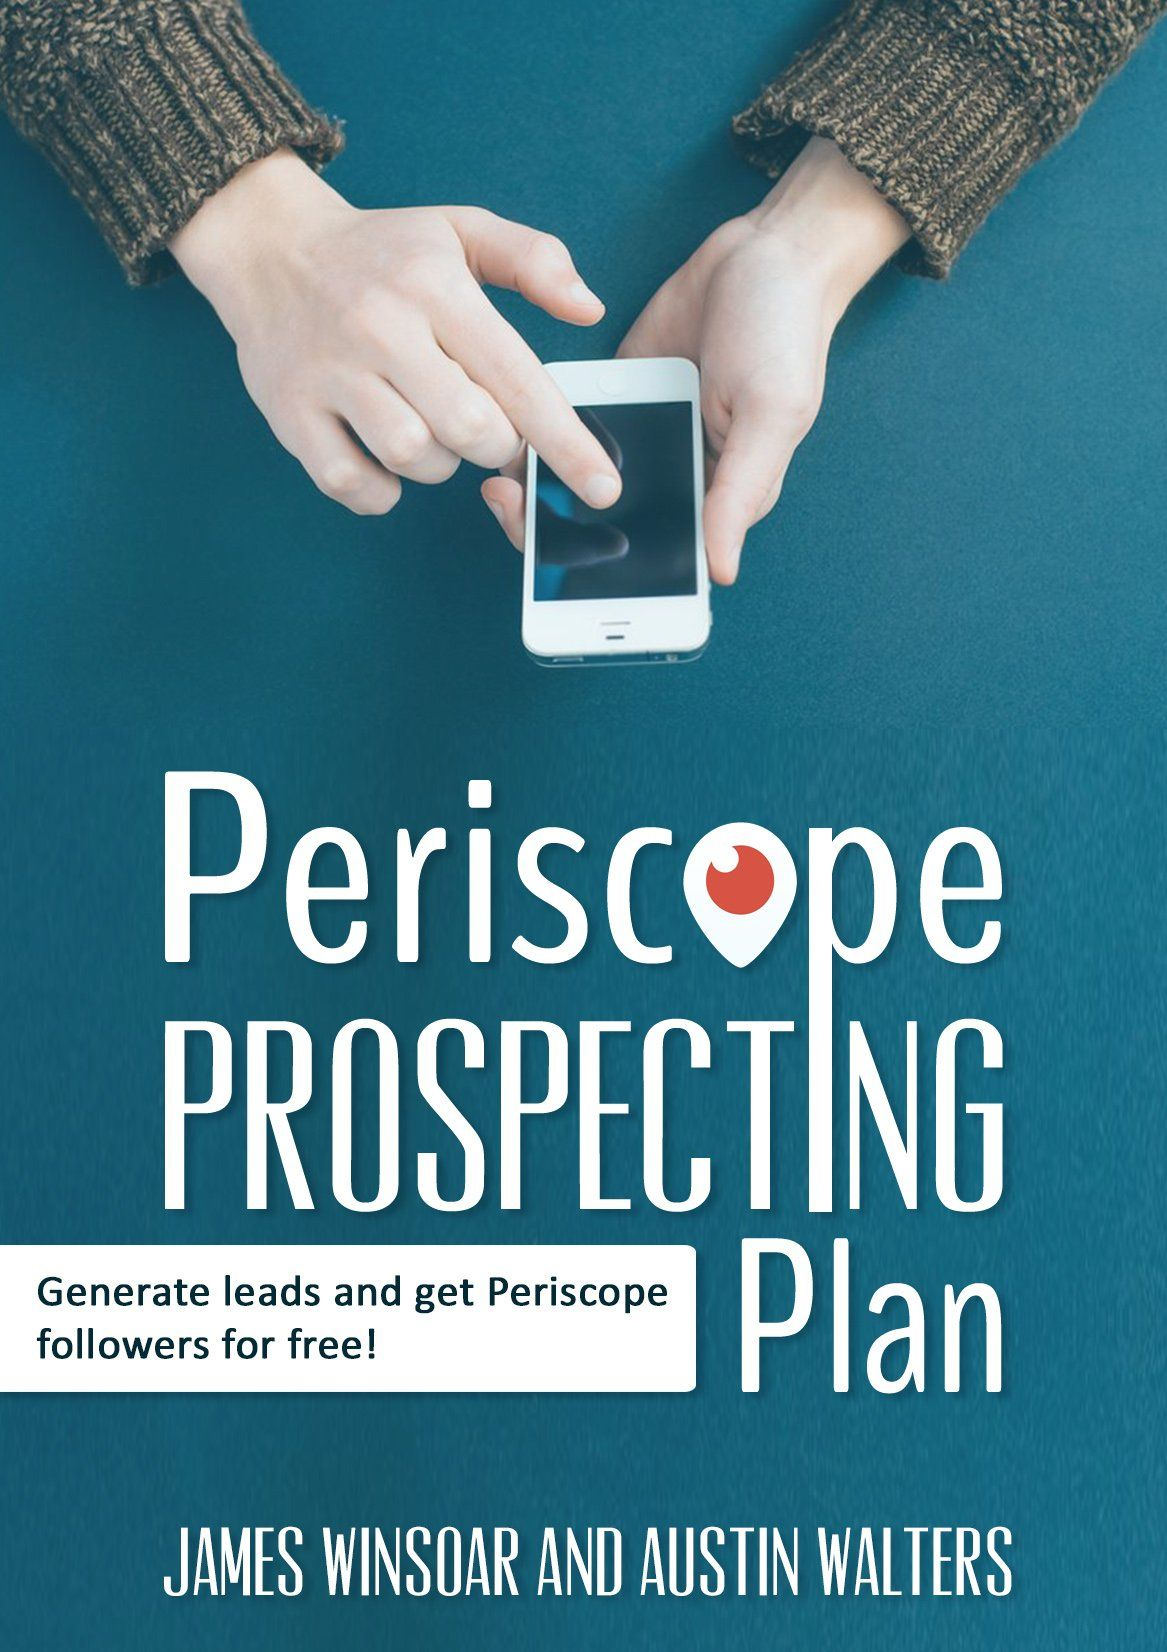 Periscope prospecting plan how to generate